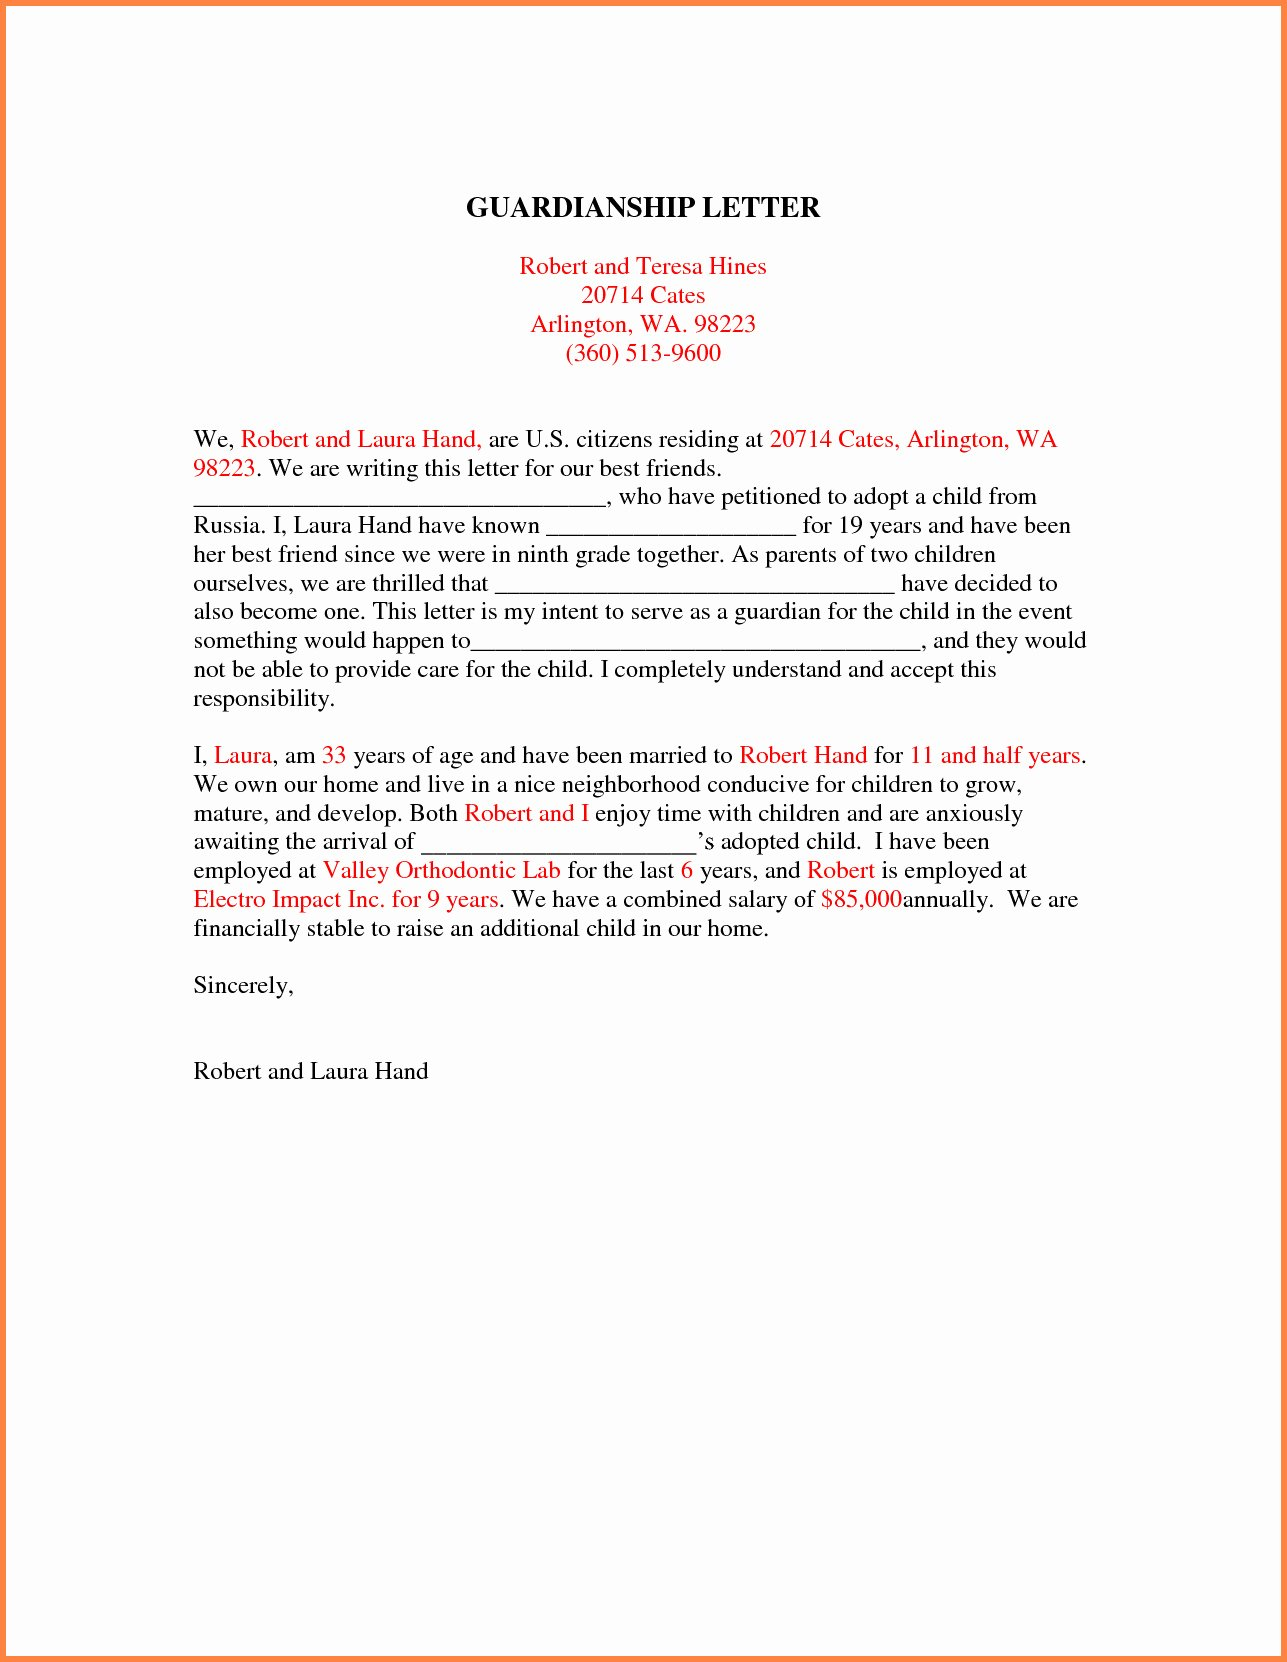 Child Custody Letter Template Luxury Template for Temporary Guardianship Letter Examples